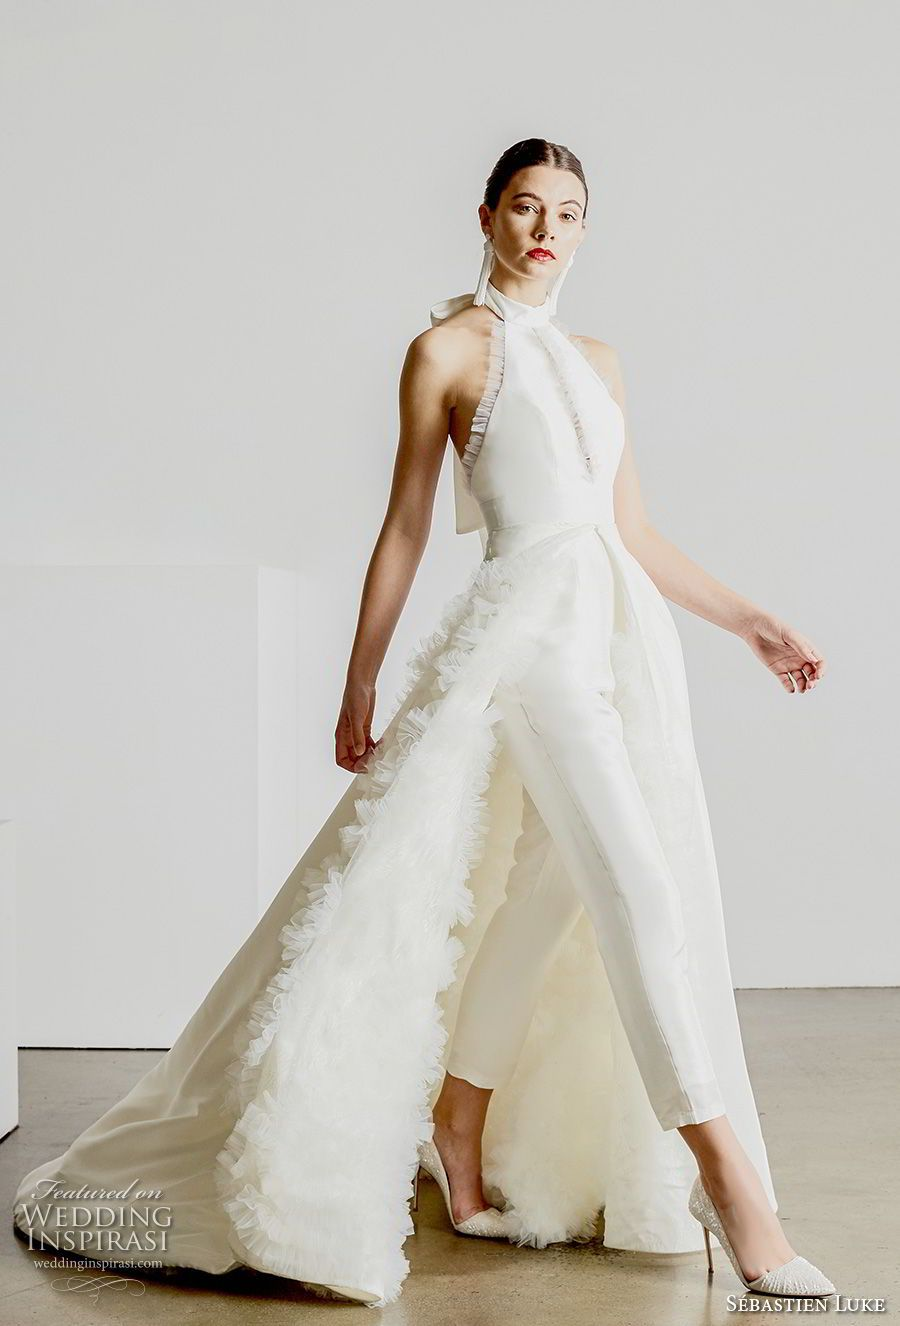 15b75f62f1 The Pant Dress Wedding Dress with removalable skirt- Ultimate  sophistication? - Sébastien Luke Spring